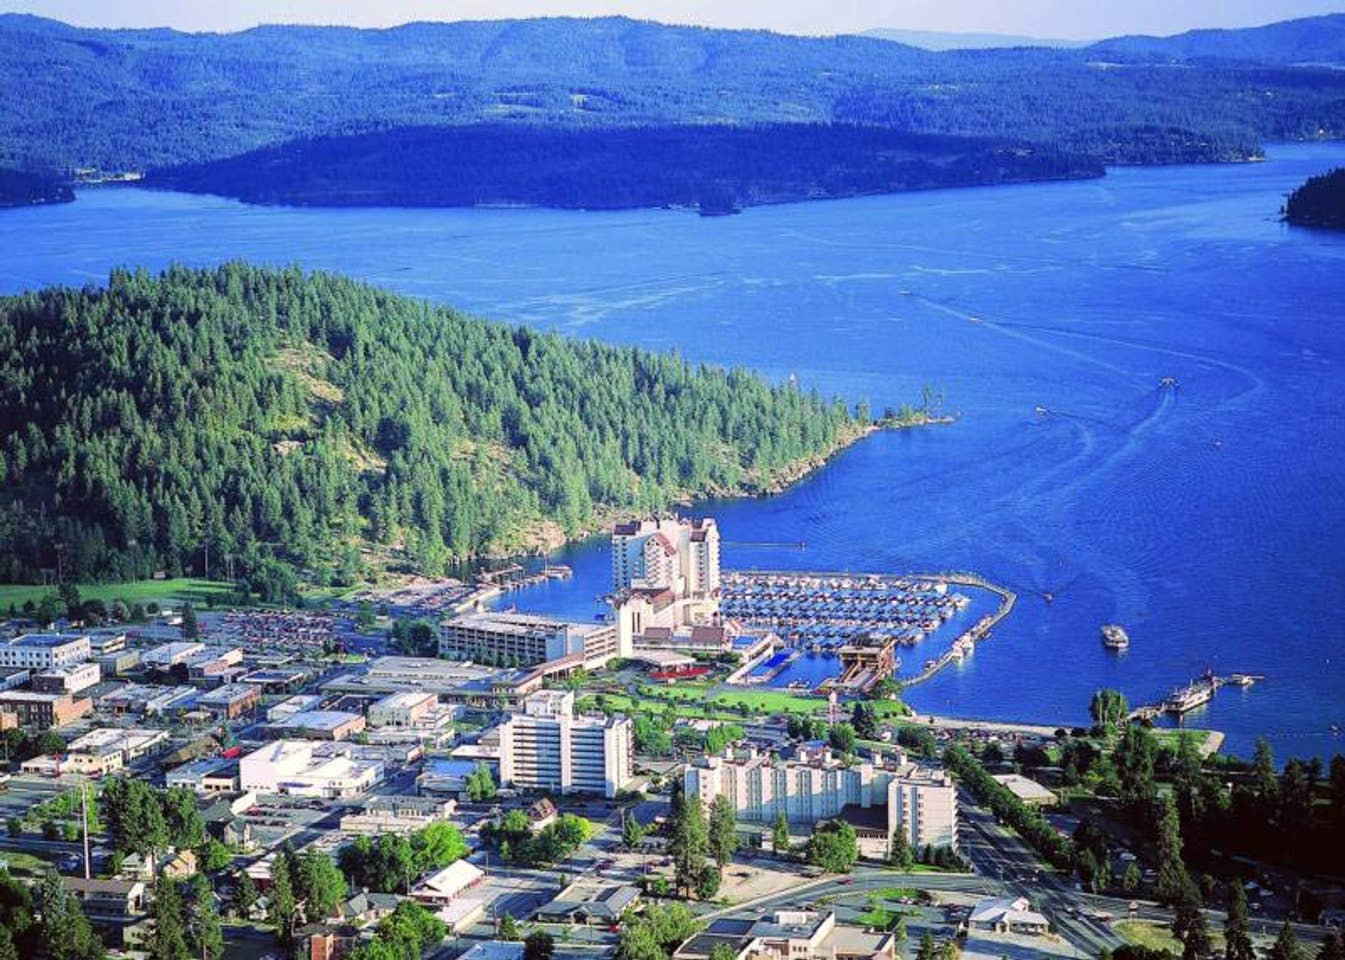 Arial view of Coeur d' alene Idaho